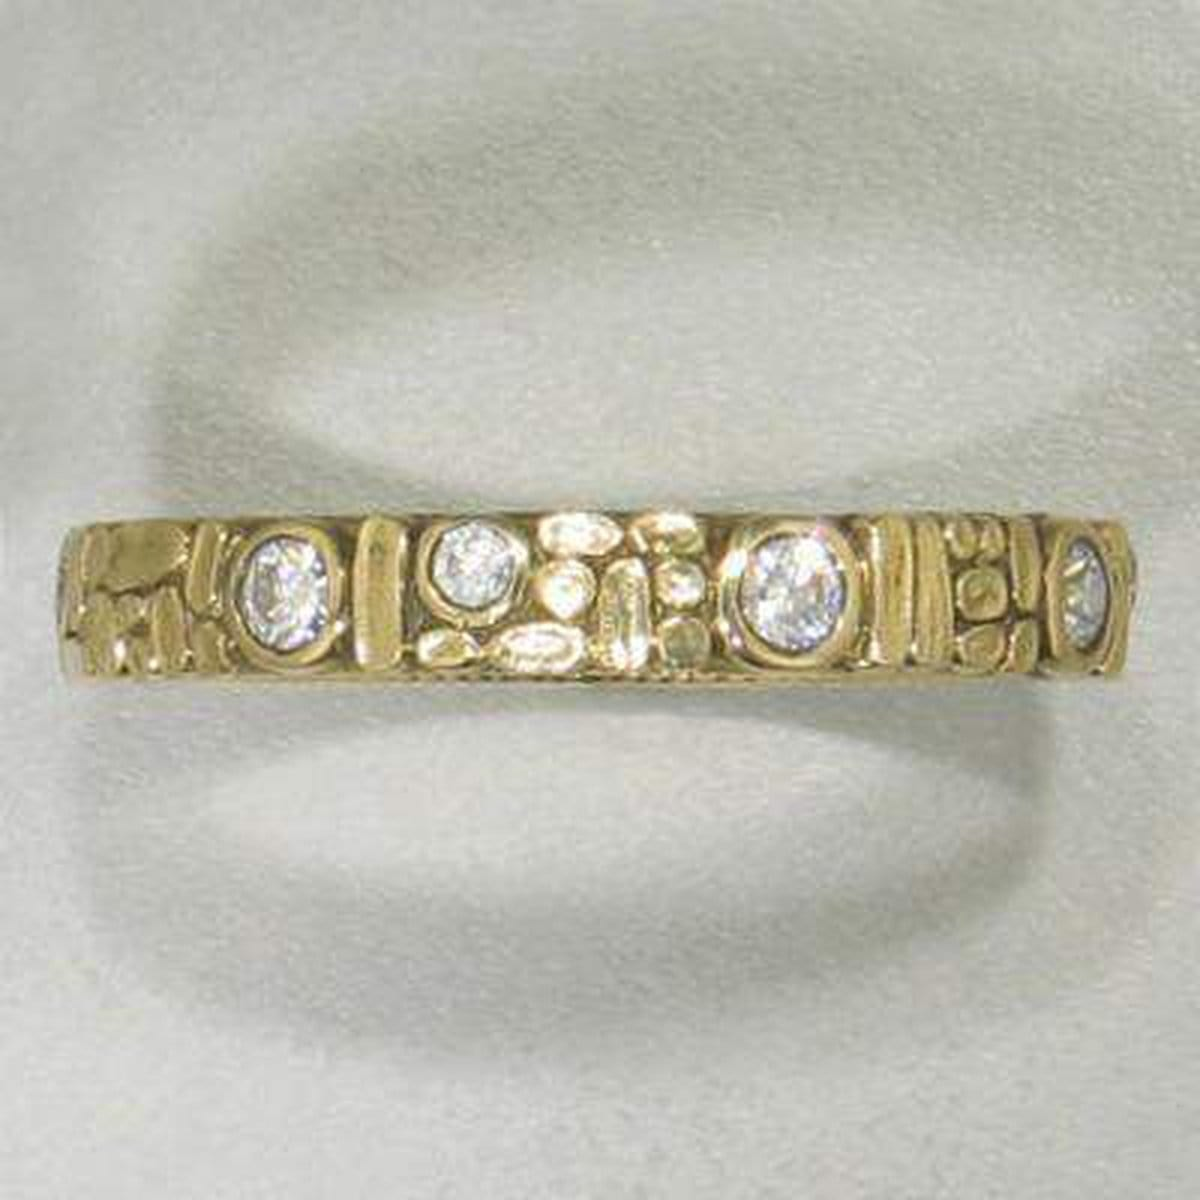 Mosaic Yellow Gold Band - R-155D-Alex Sepkus-Renee Taylor Gallery